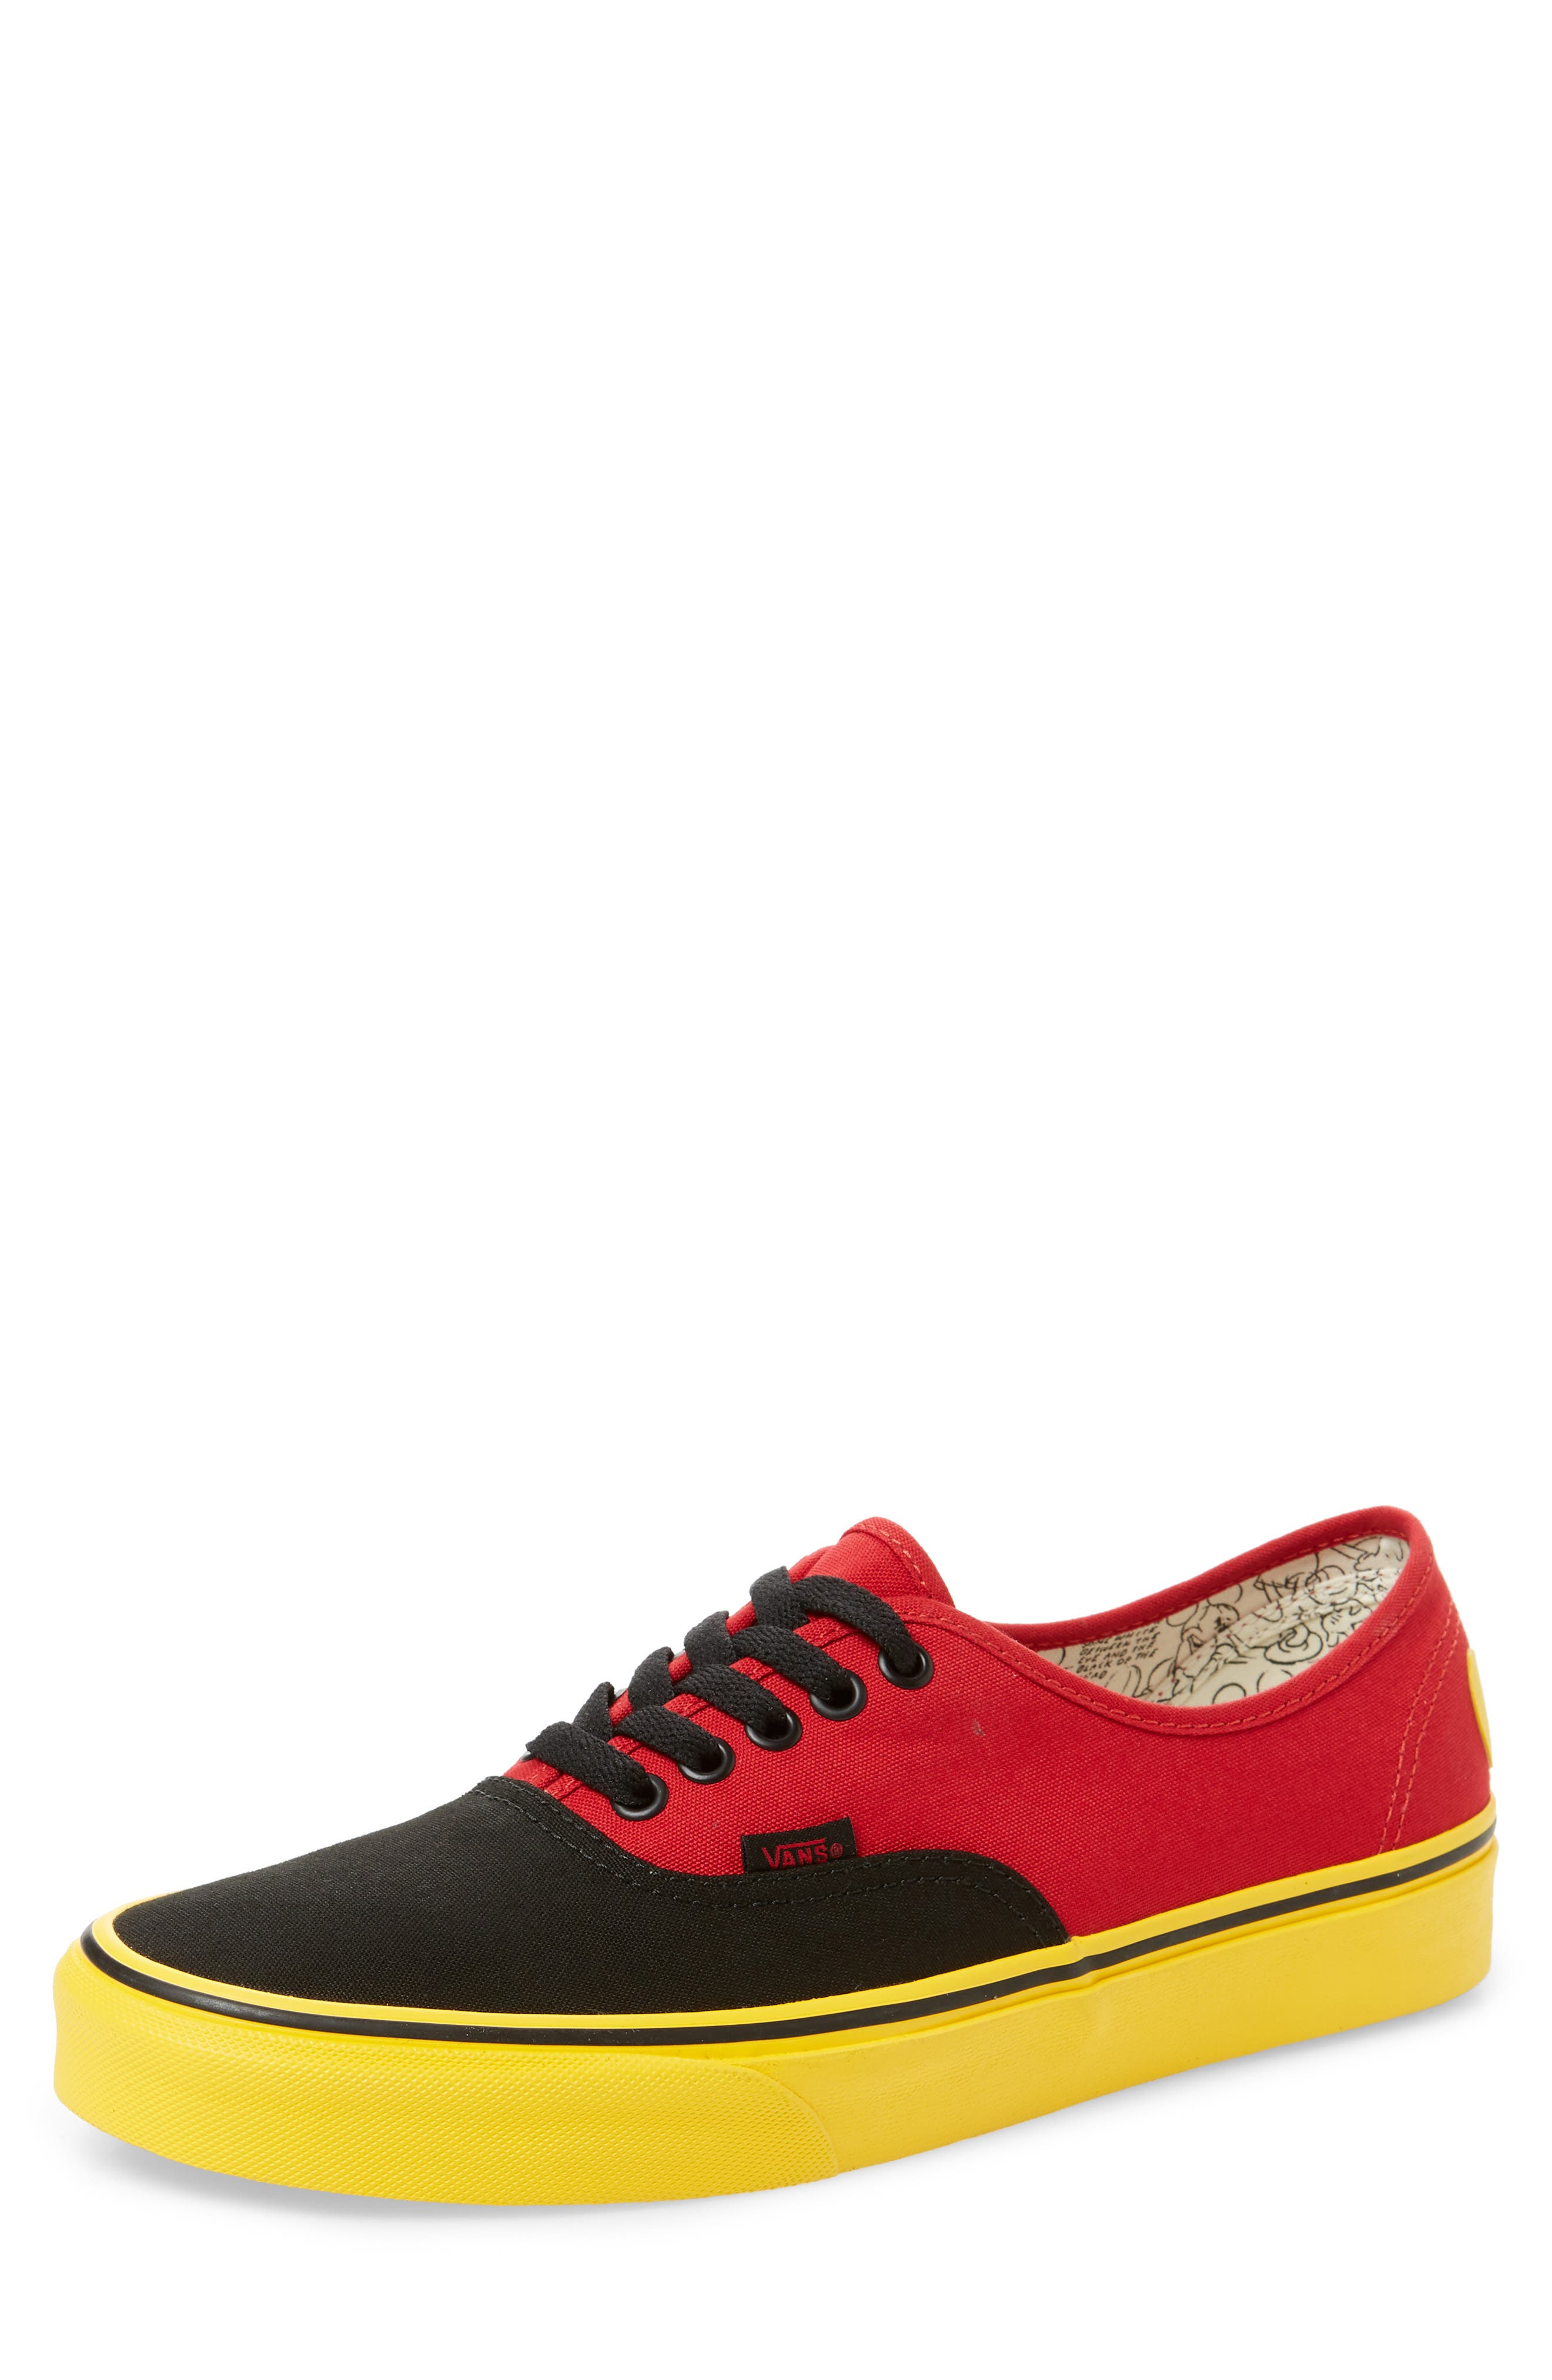 x Disney<sup>®</sup> Authentic Low Top Sneaker,                         Main,                         color, DISNEY MICKEY/ RED/ YELLOW